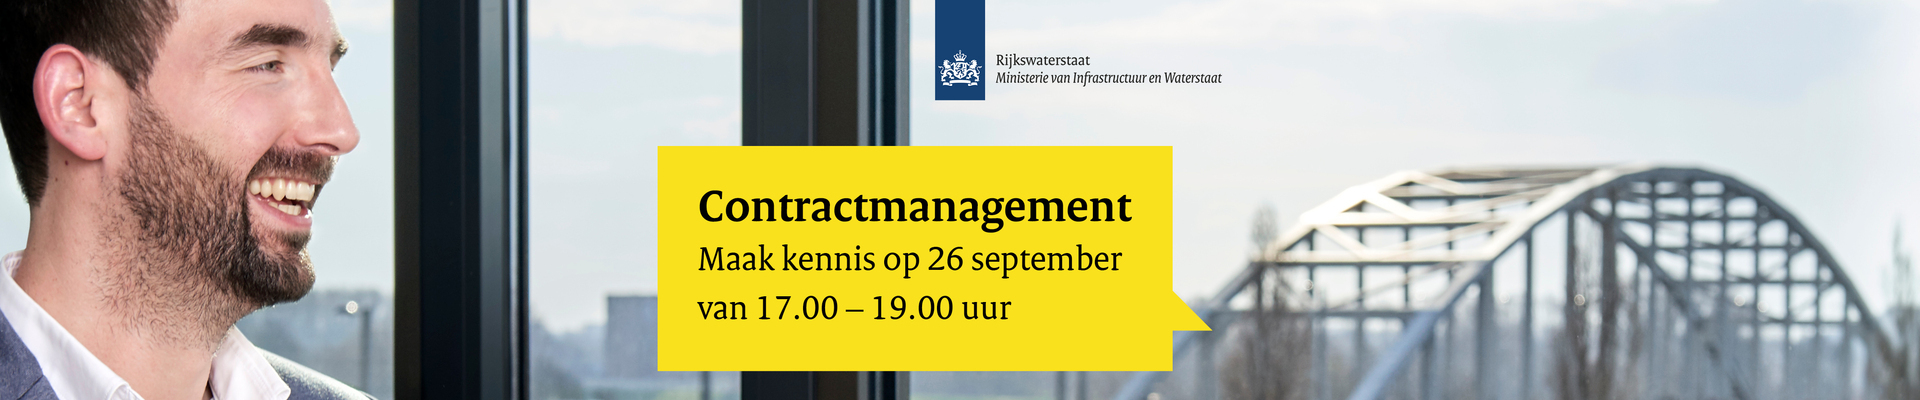 Meet & Greet Contractmanagement